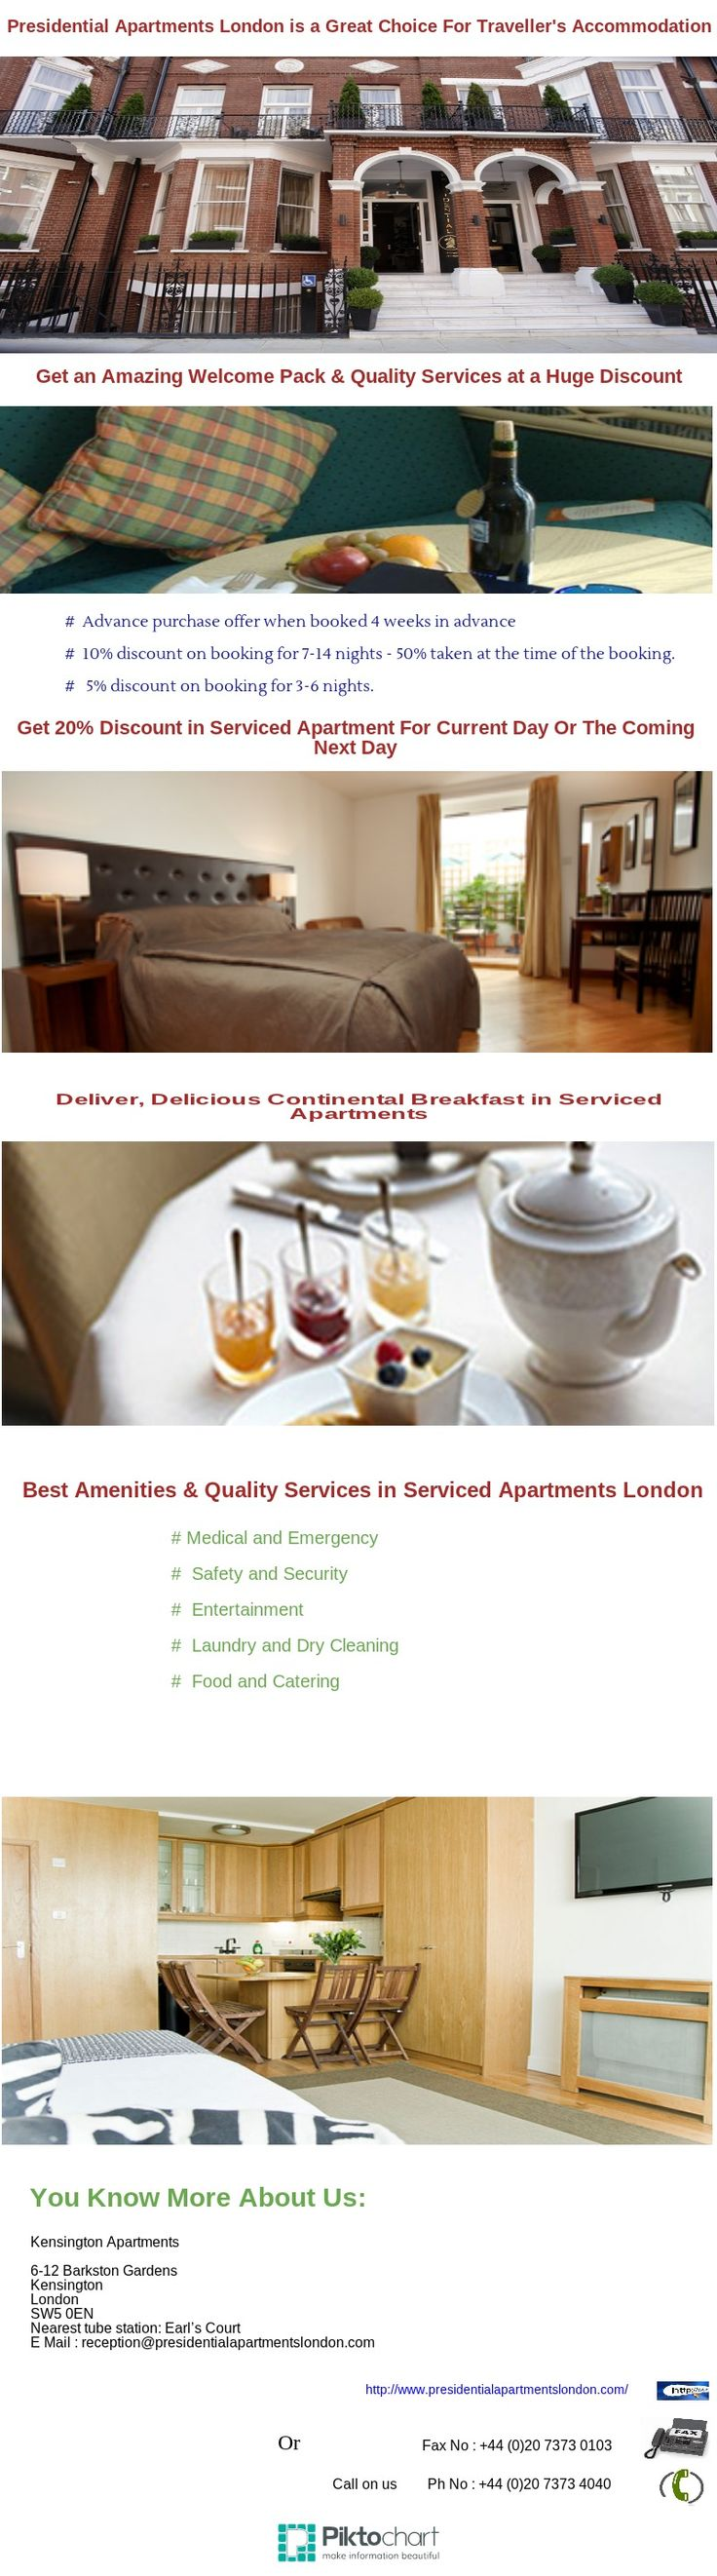 Get an amazing services and quality package with presidential serviced apartments, when some one is visiting for business accommodation or any trip .